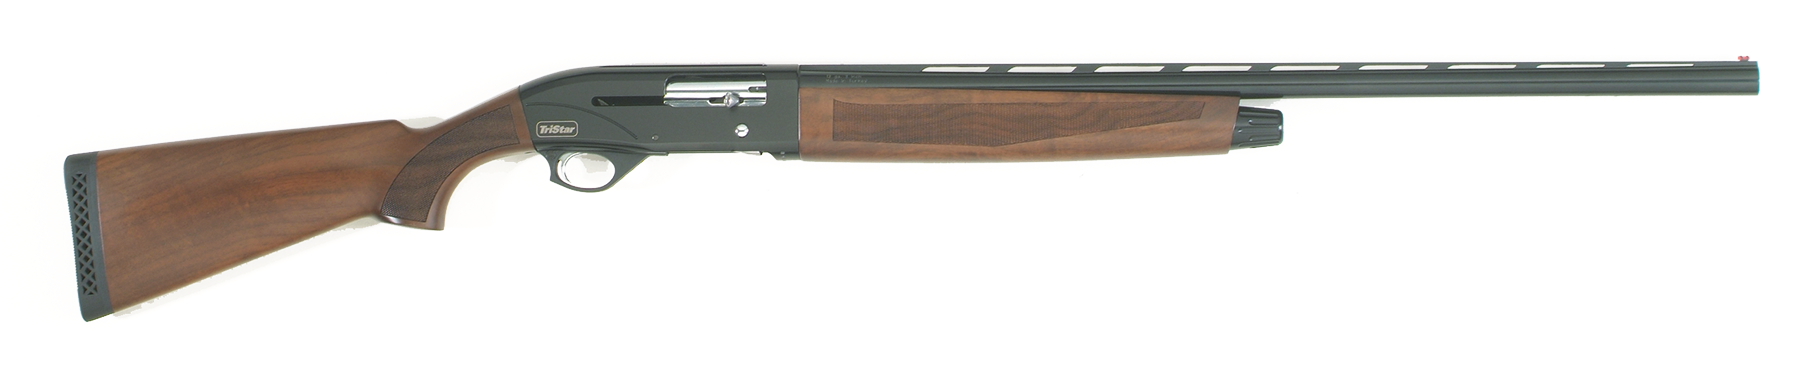 TriStar Viper G2 Sporting Semi-Auto Shotgun 3'' 12 Gauge 30'' Black - Turkish Walnut